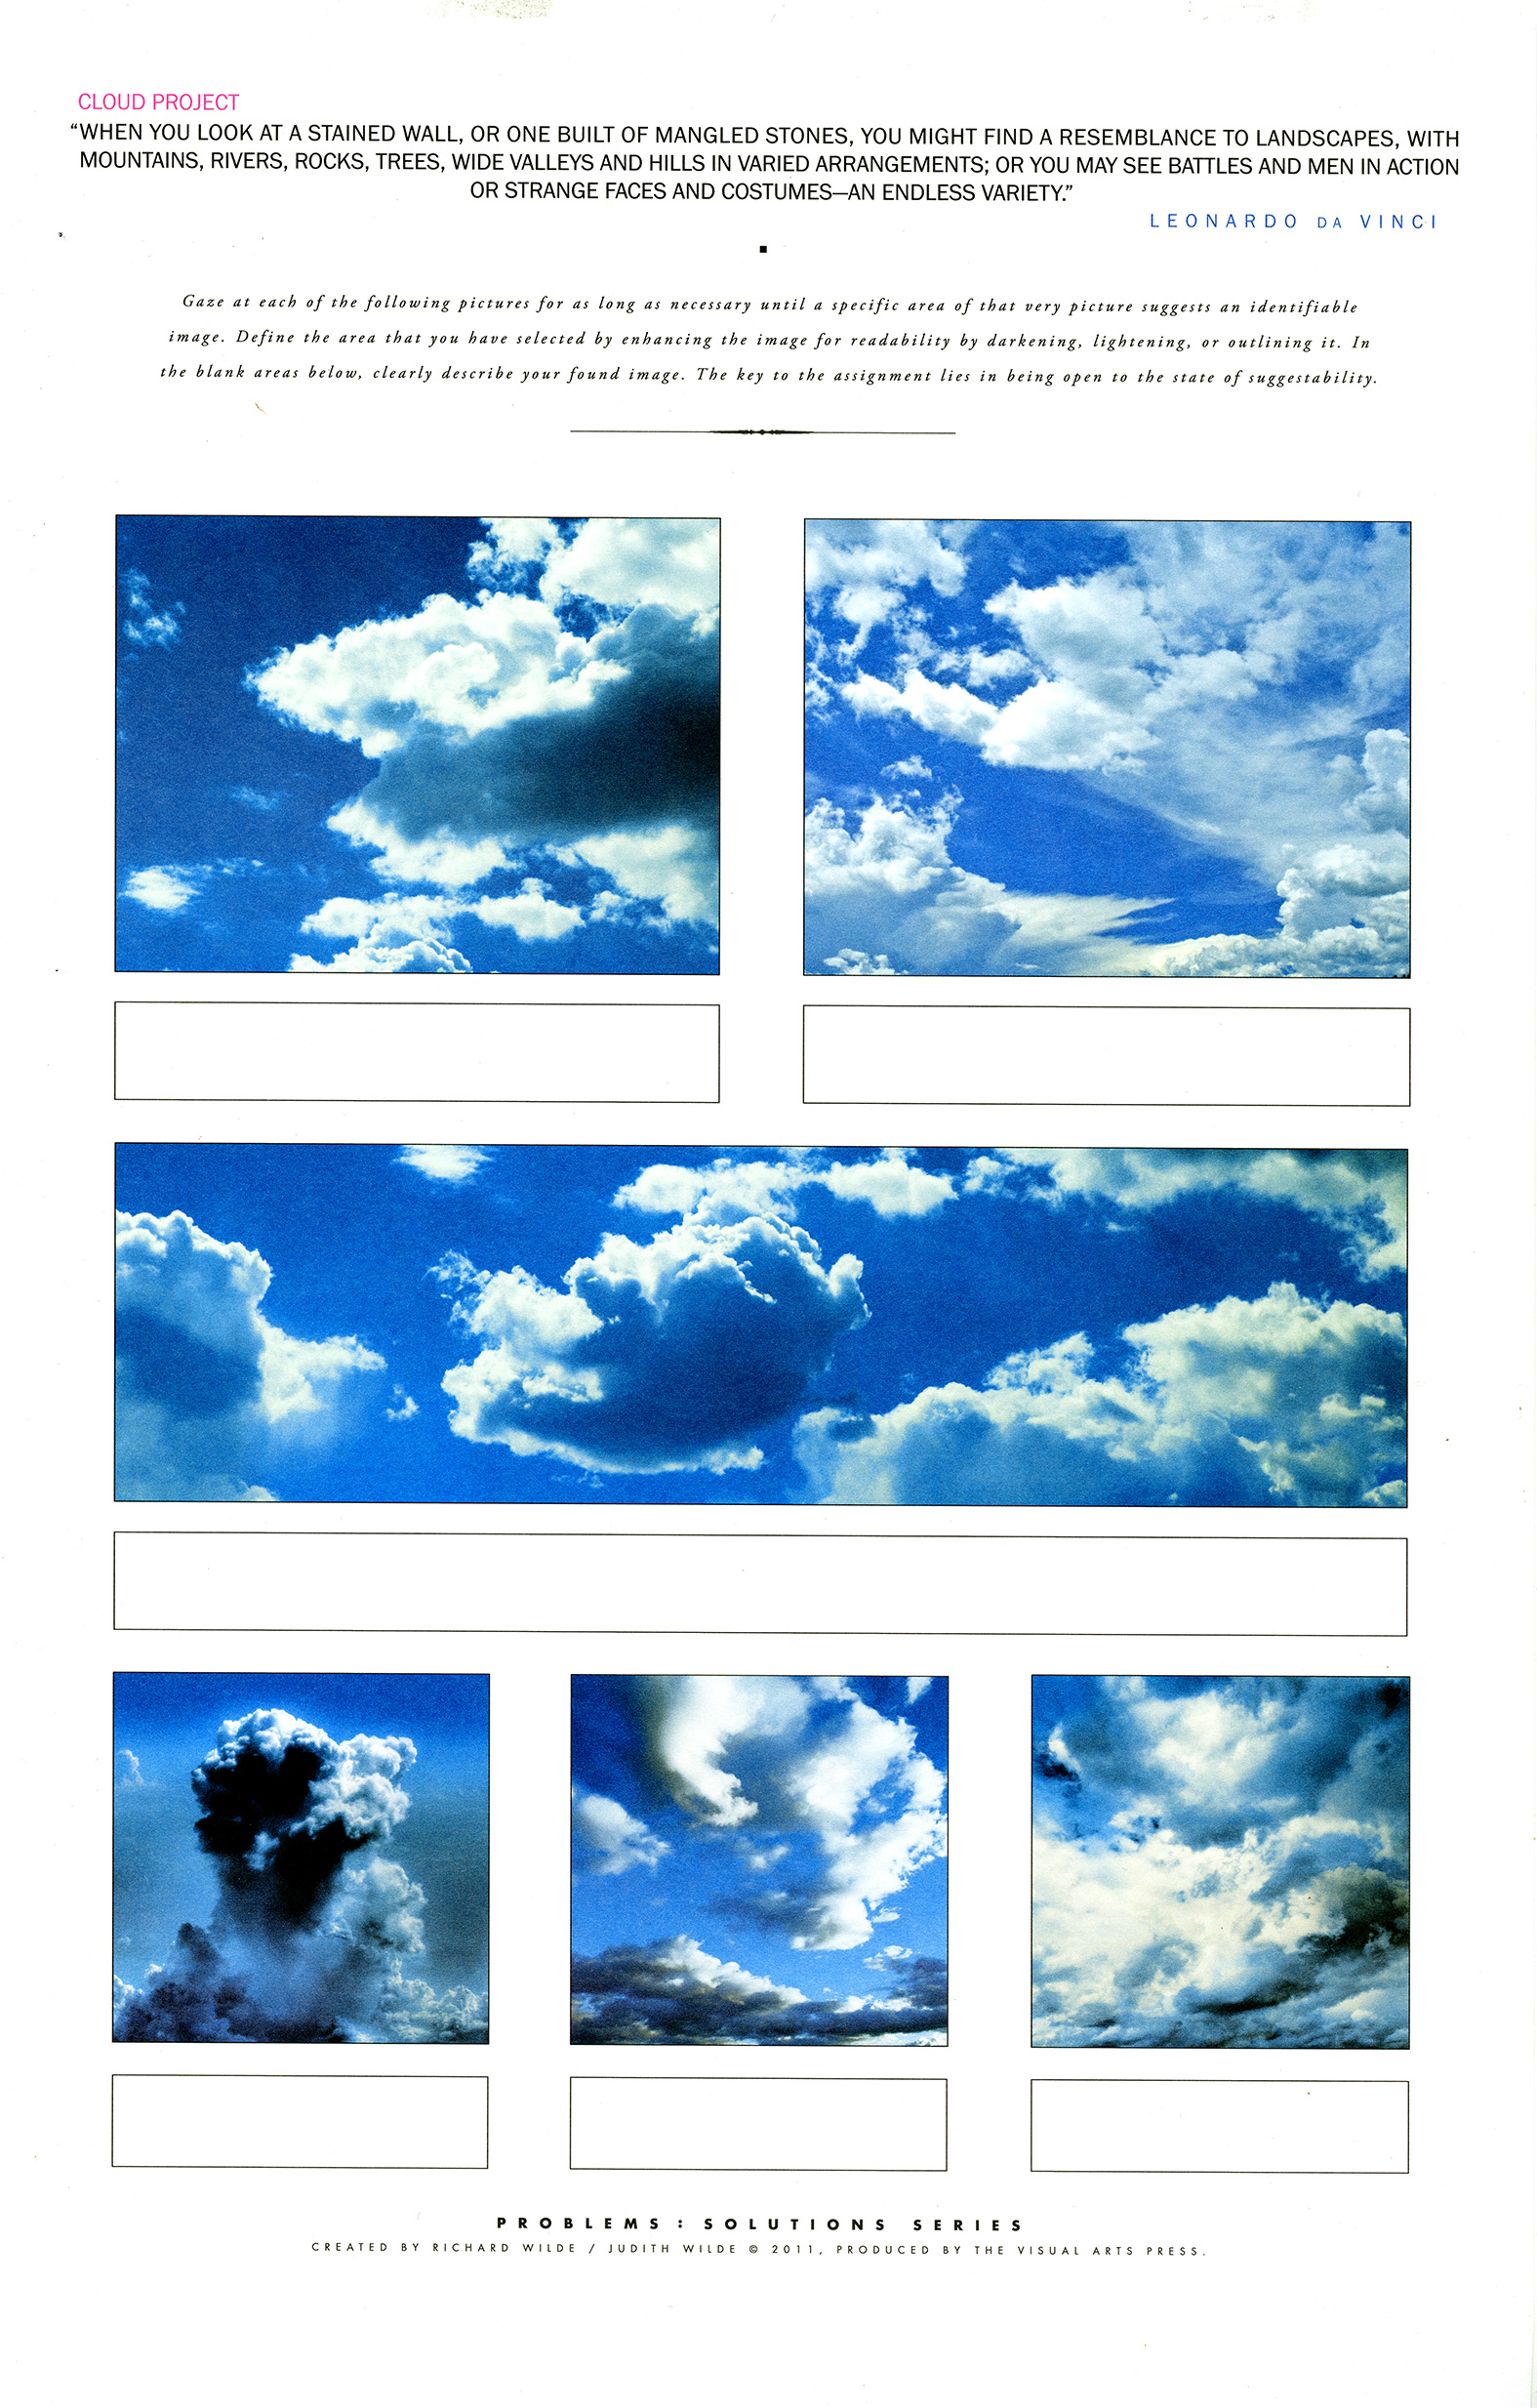 Six cloud images and boxes to draw identifiable images.